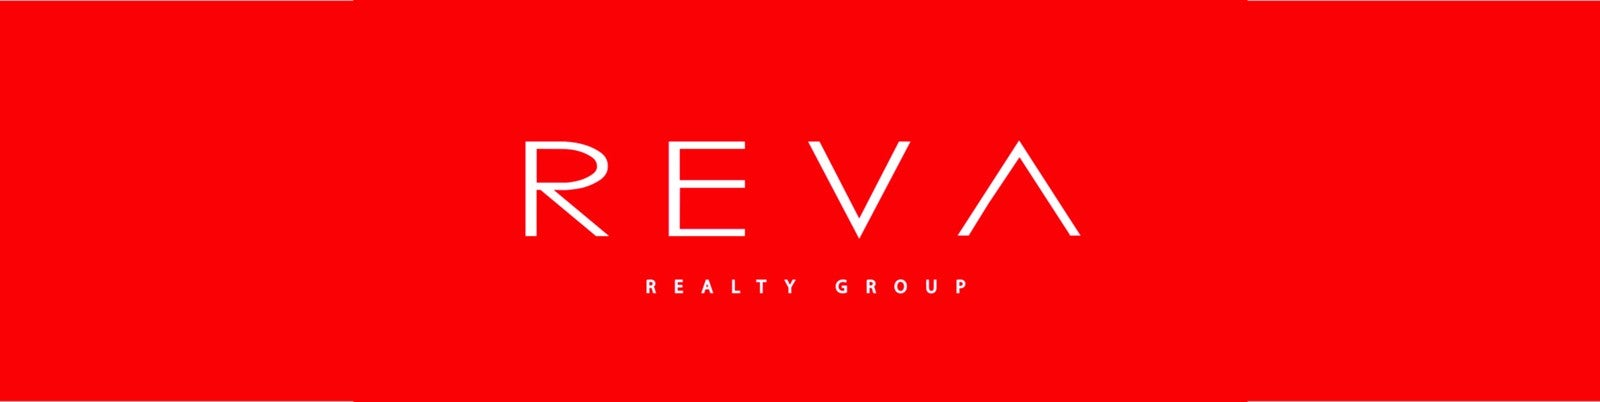 Reva Realty Group header